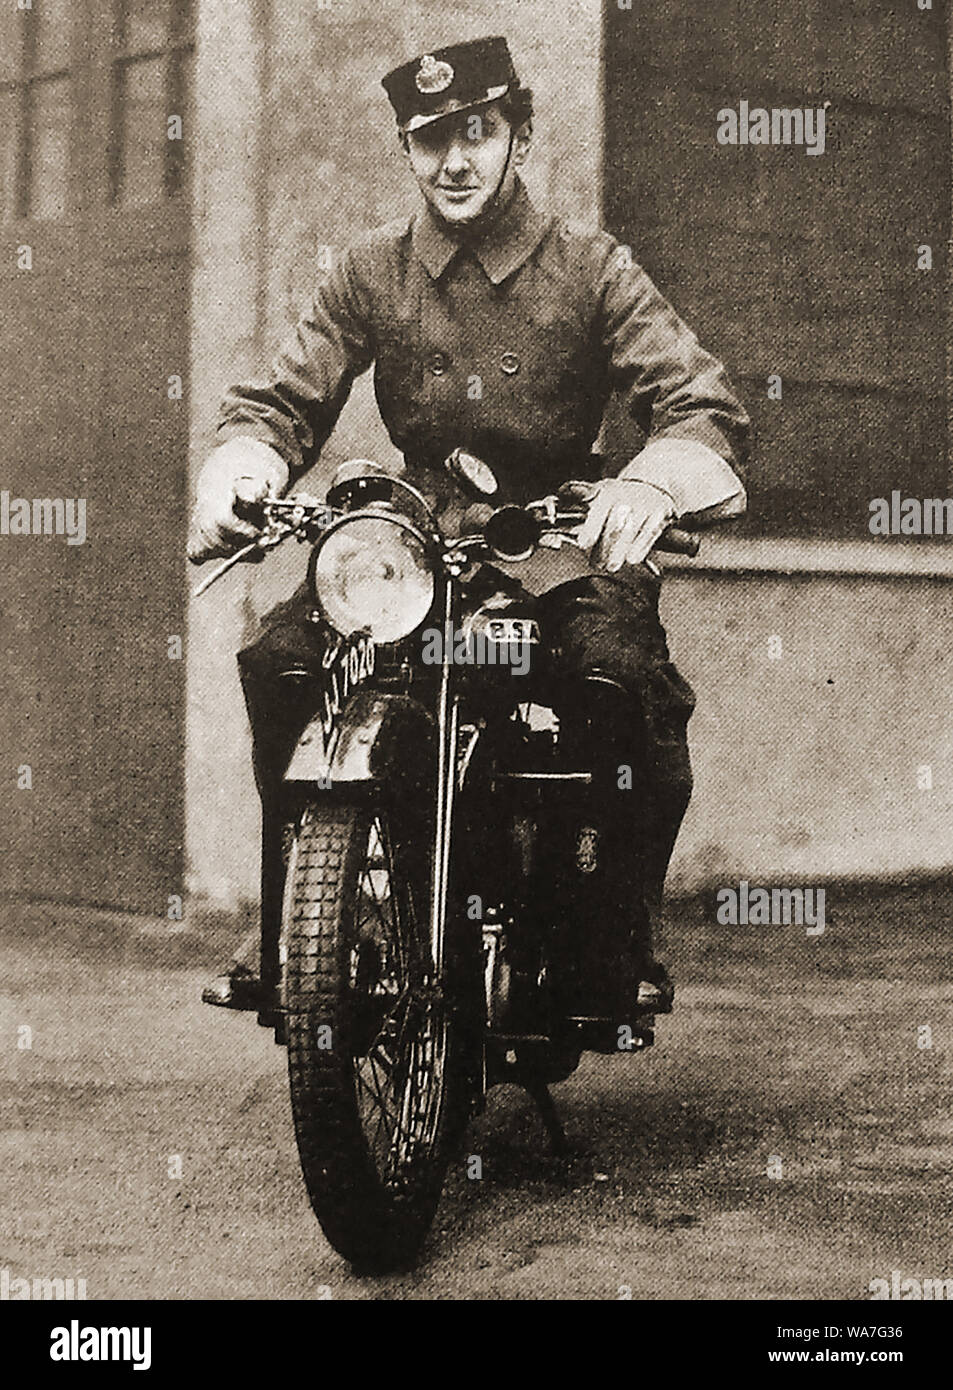 British Post Office GPO motorcycle telegram delivery man c1940's Stock Photo